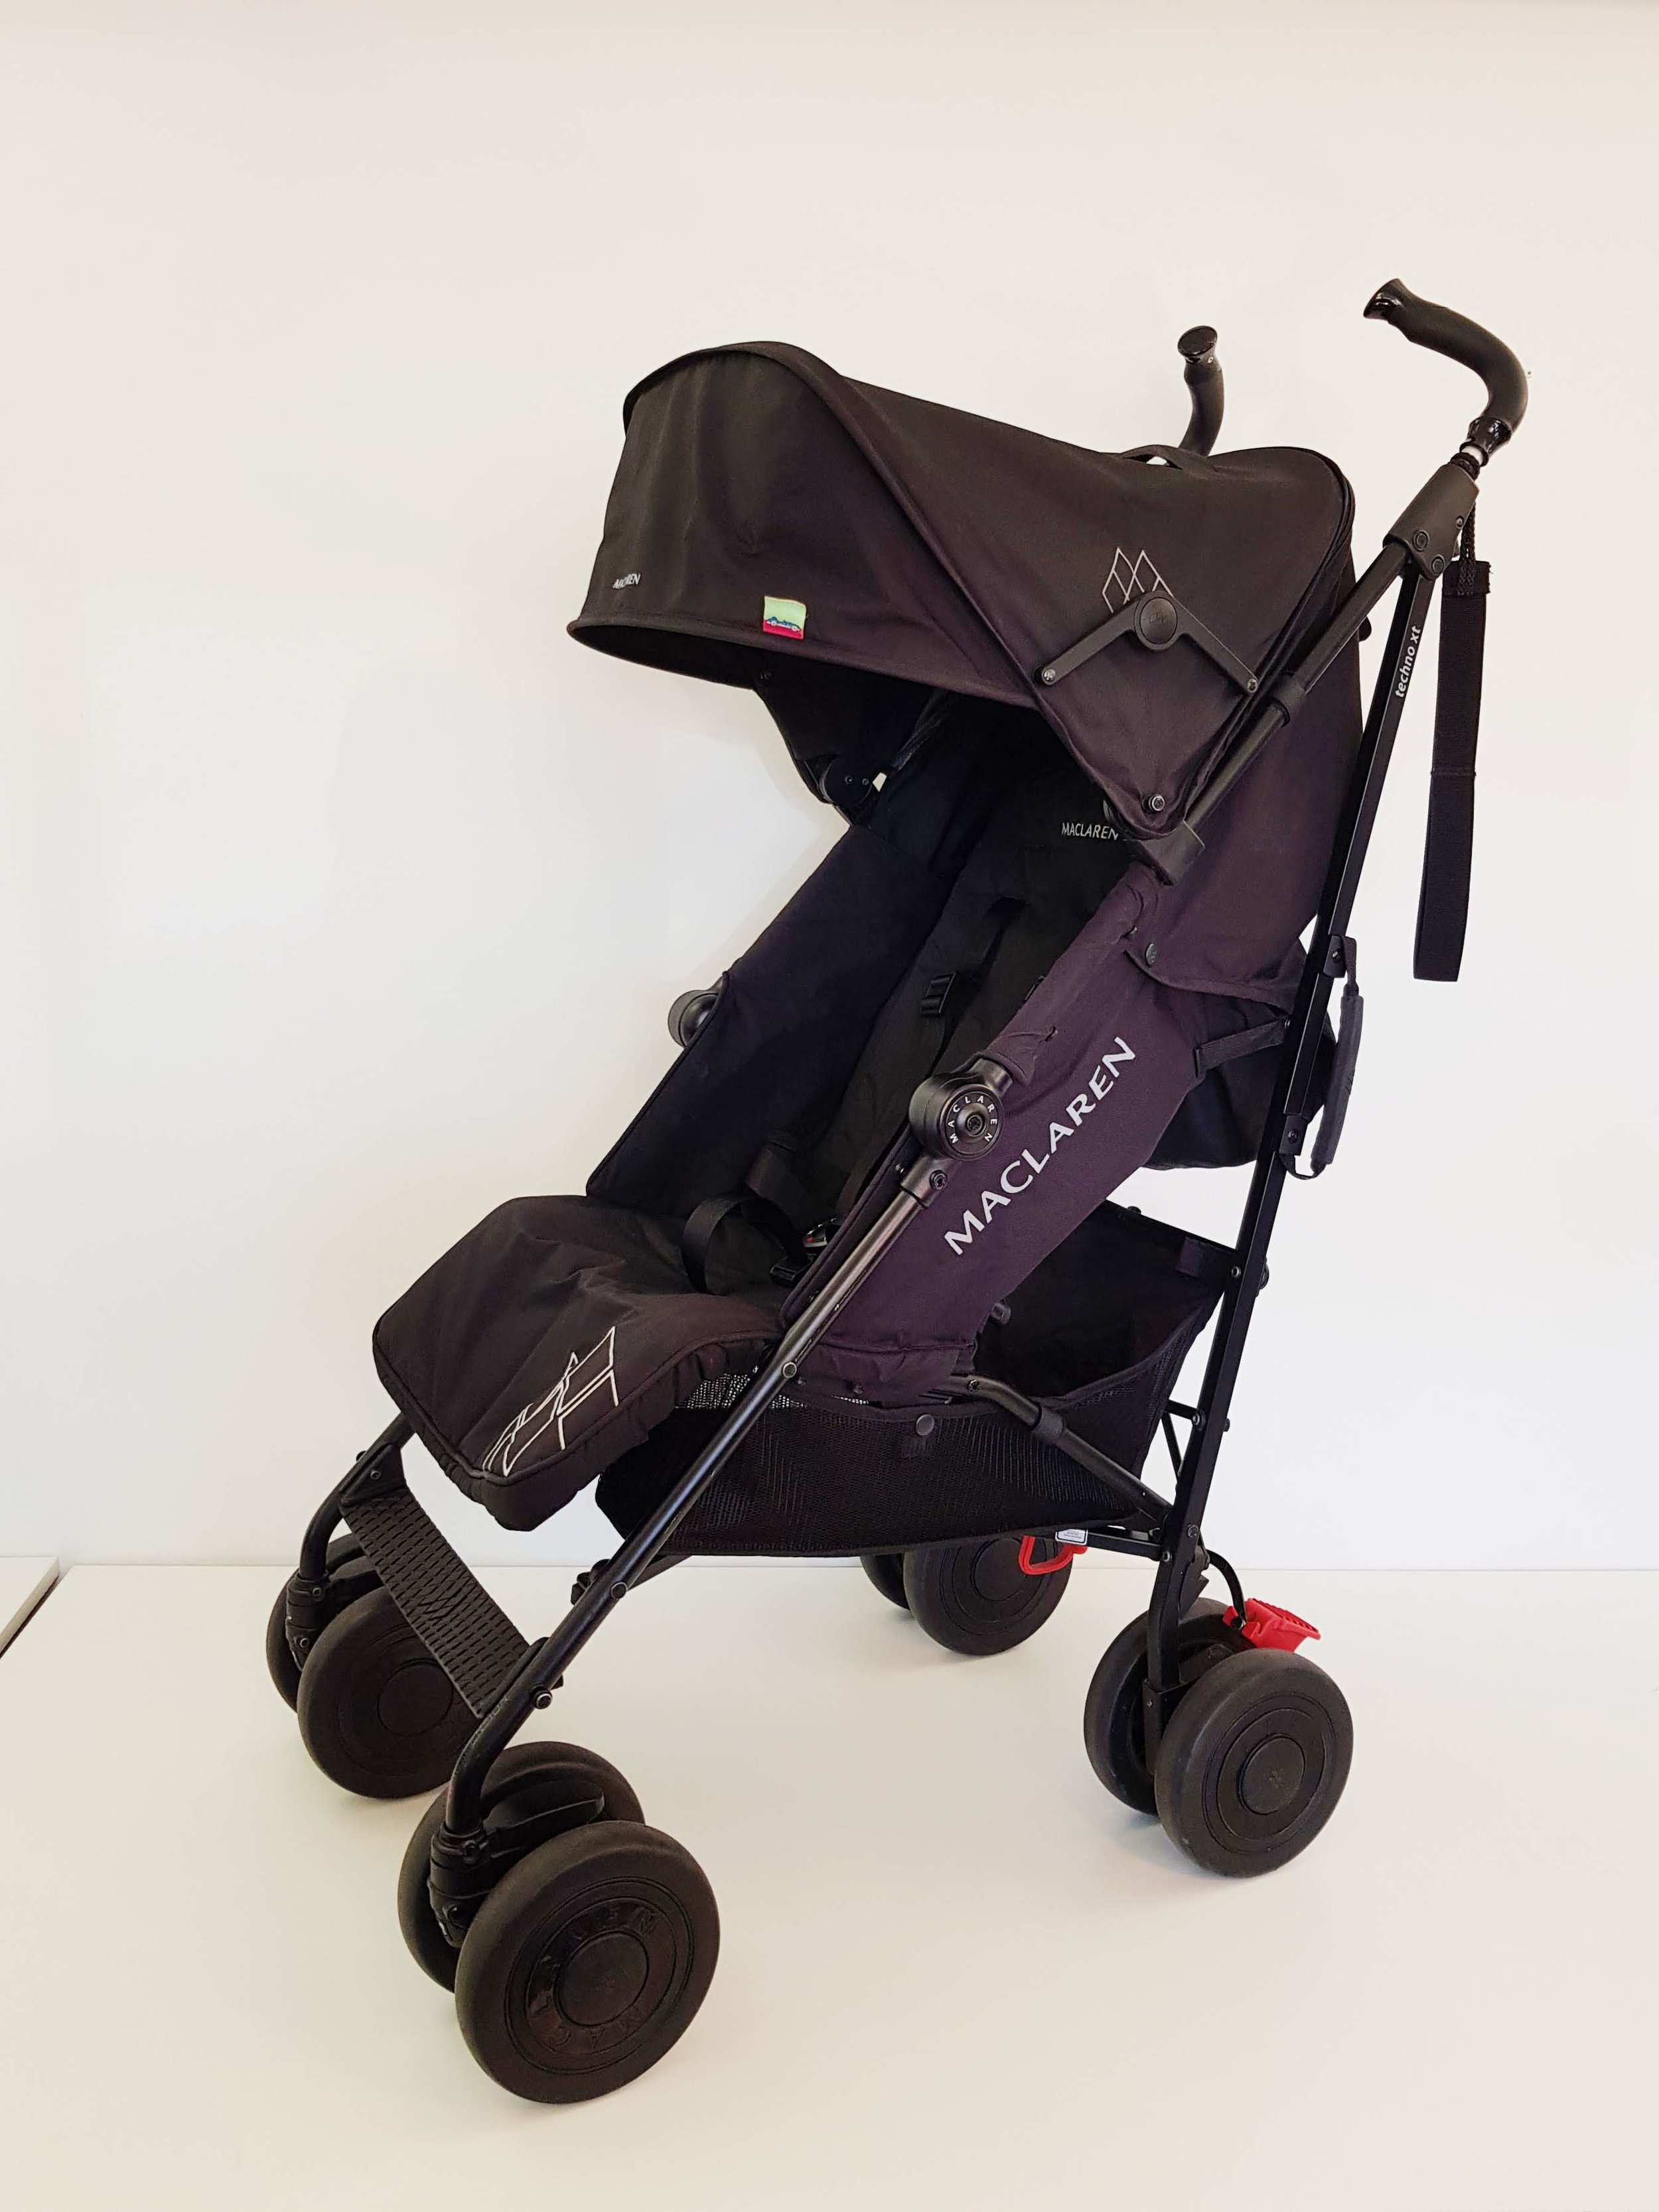 Used Maclaren Single Stroller Techno Xt To Buy Second Hand Products For Sale Baby Equipment Rental London Airtots